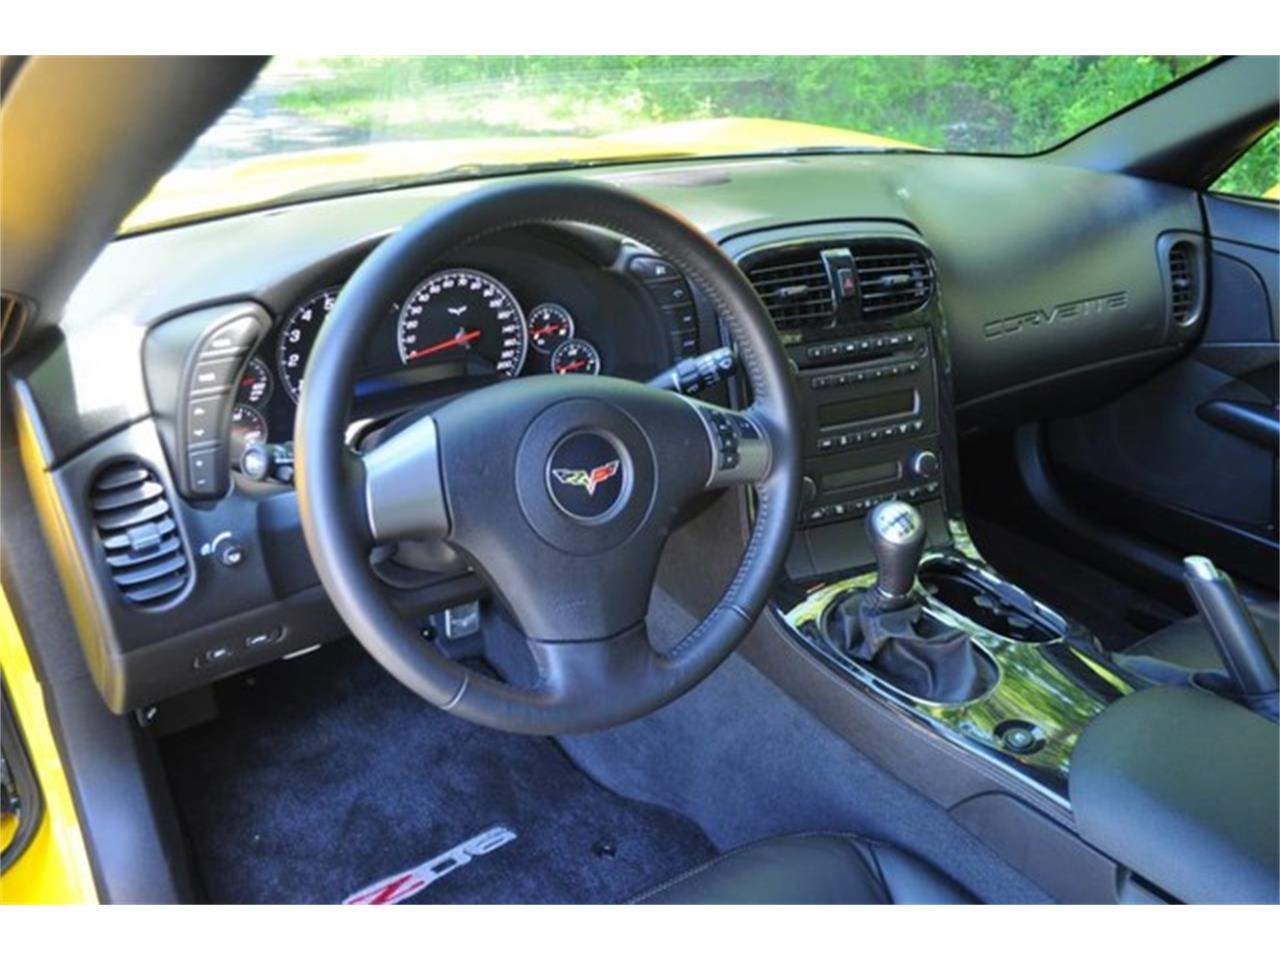 Large Picture of 2010 Chevrolet Corvette - $49,999.00 Offered by Prestige Motor Car Co. - L74B